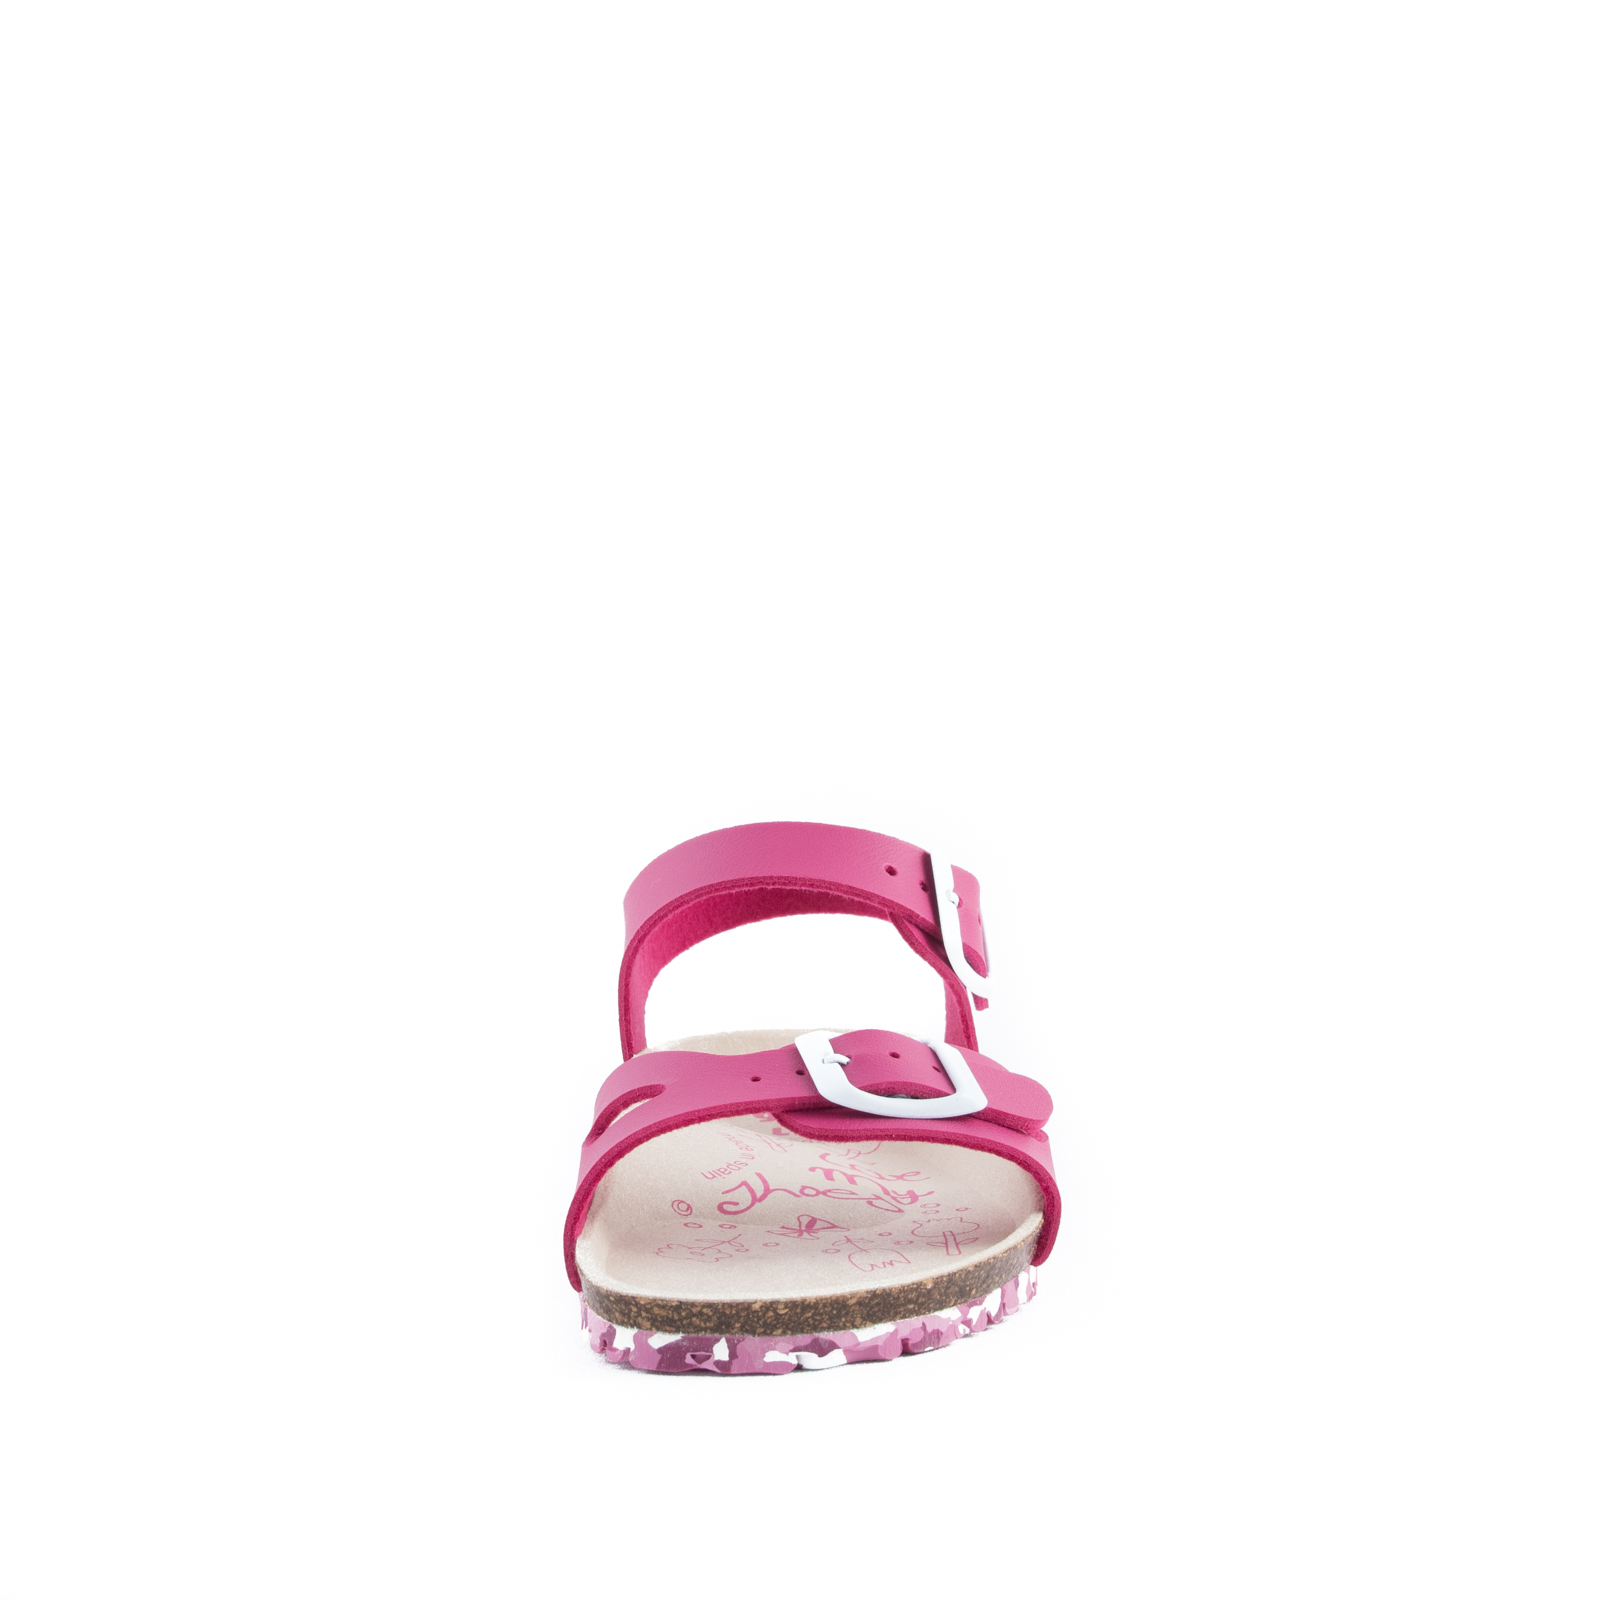 GARVALIN Girls Sandals Fuchsia 192663-A NOW £25